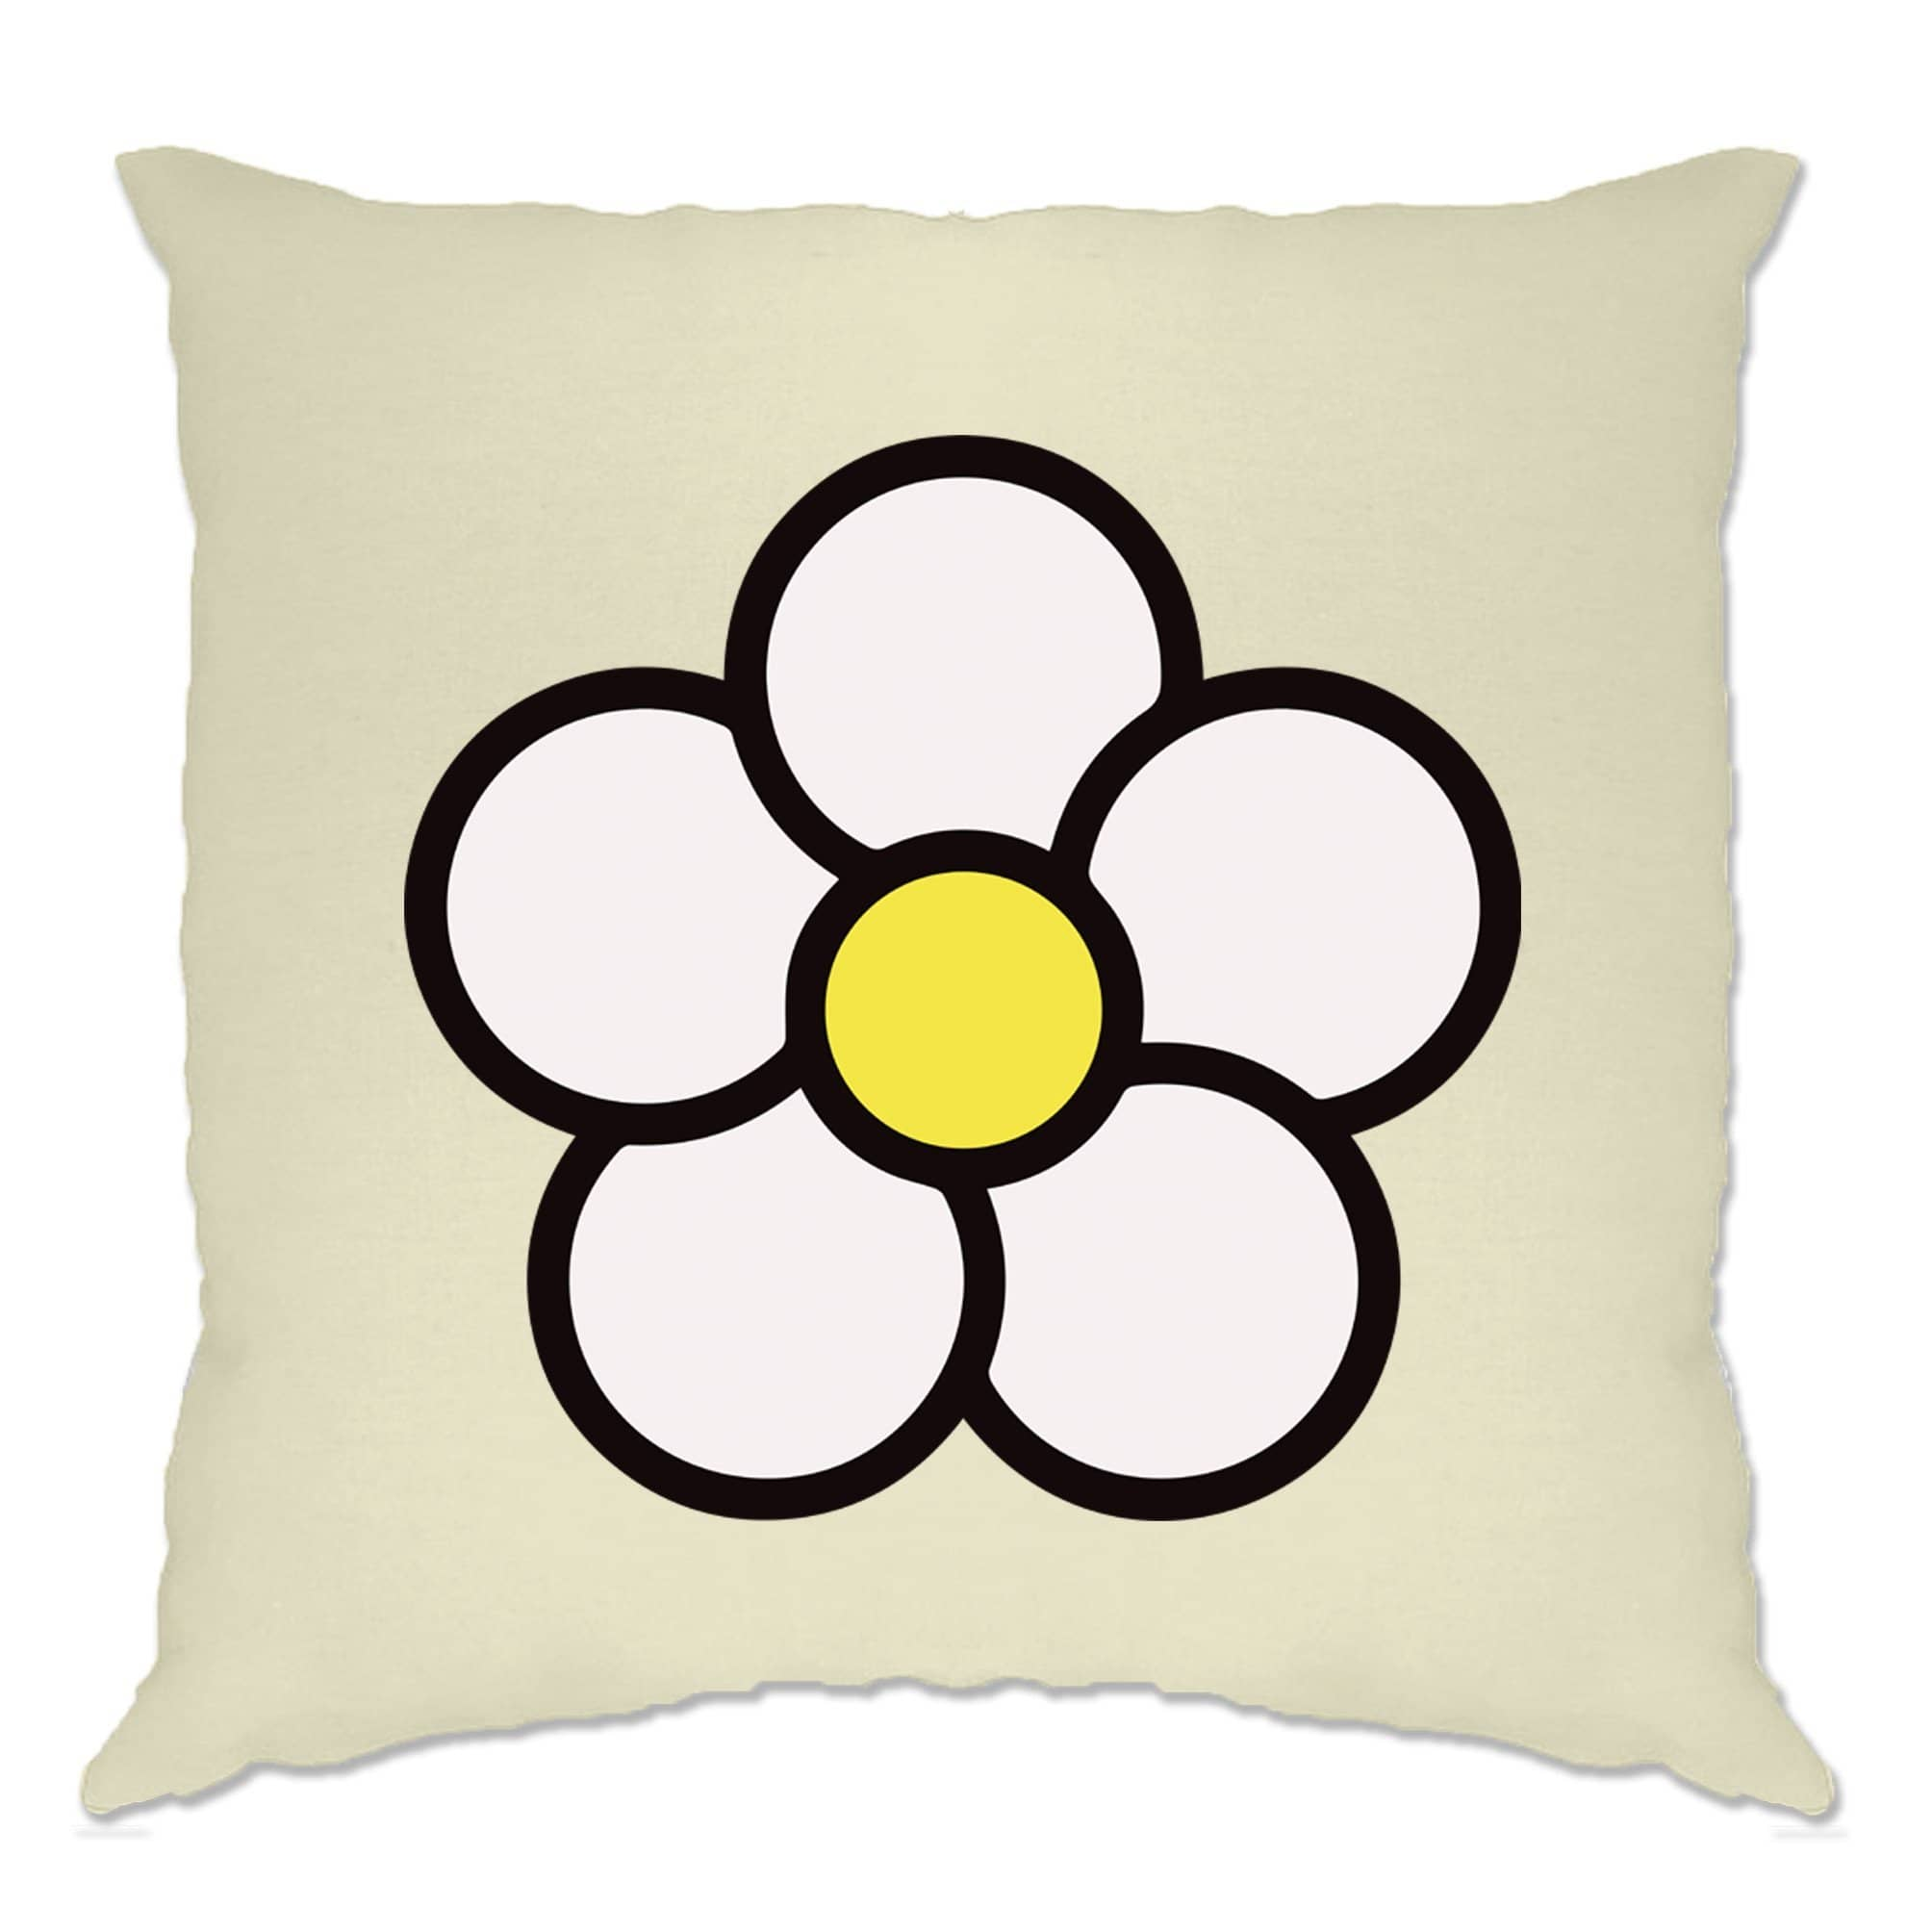 Cute Summer Cushion Cover Floral Single Daisy